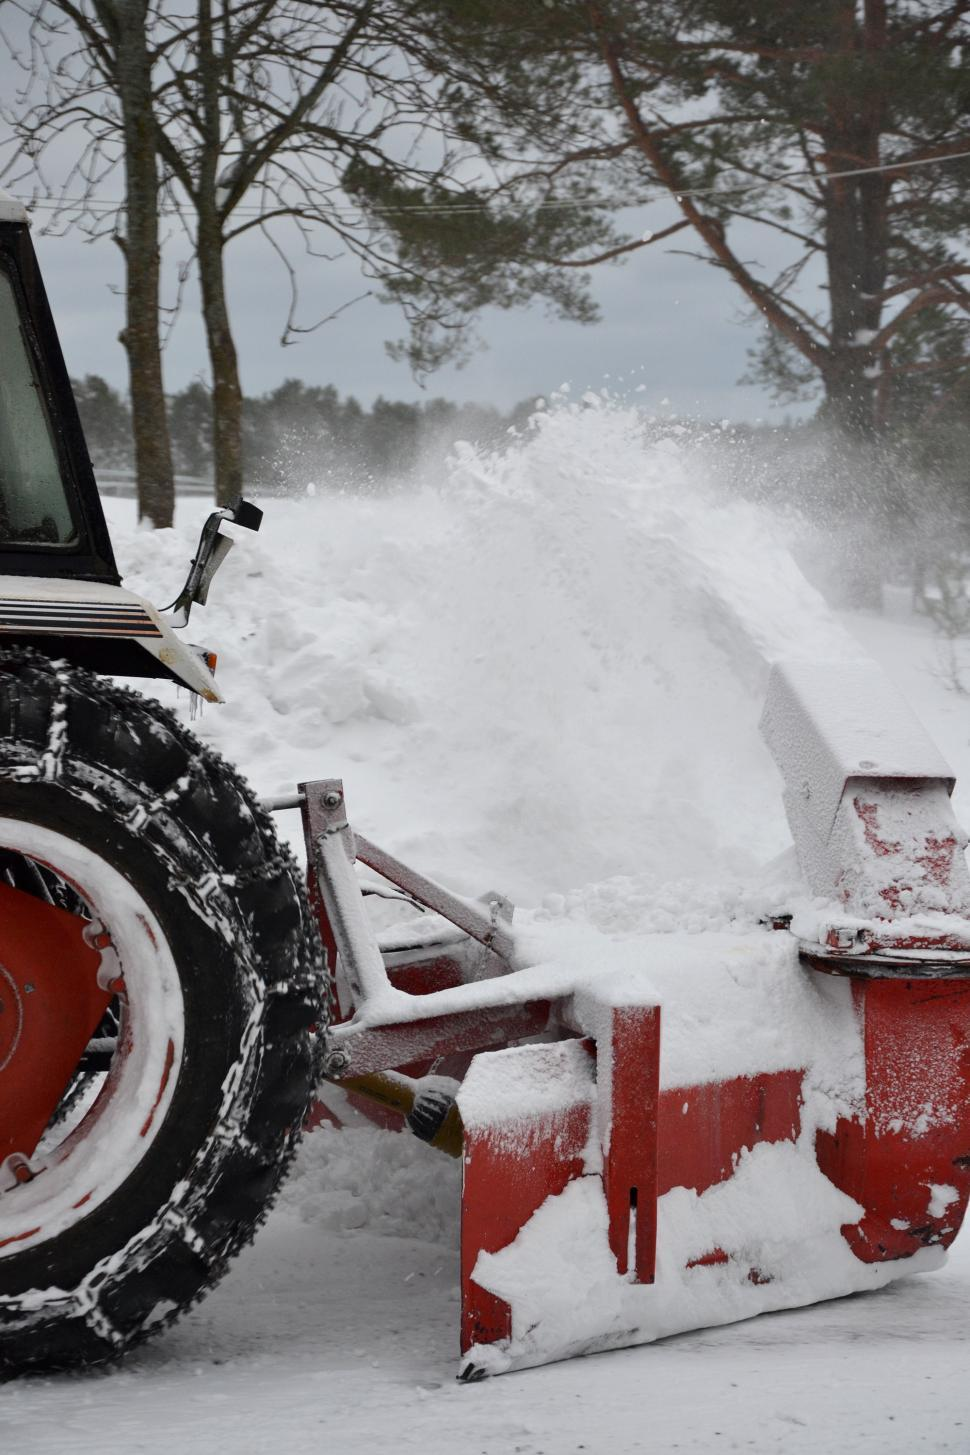 Download Free Stock HD Photo of Snow clearance machine Online